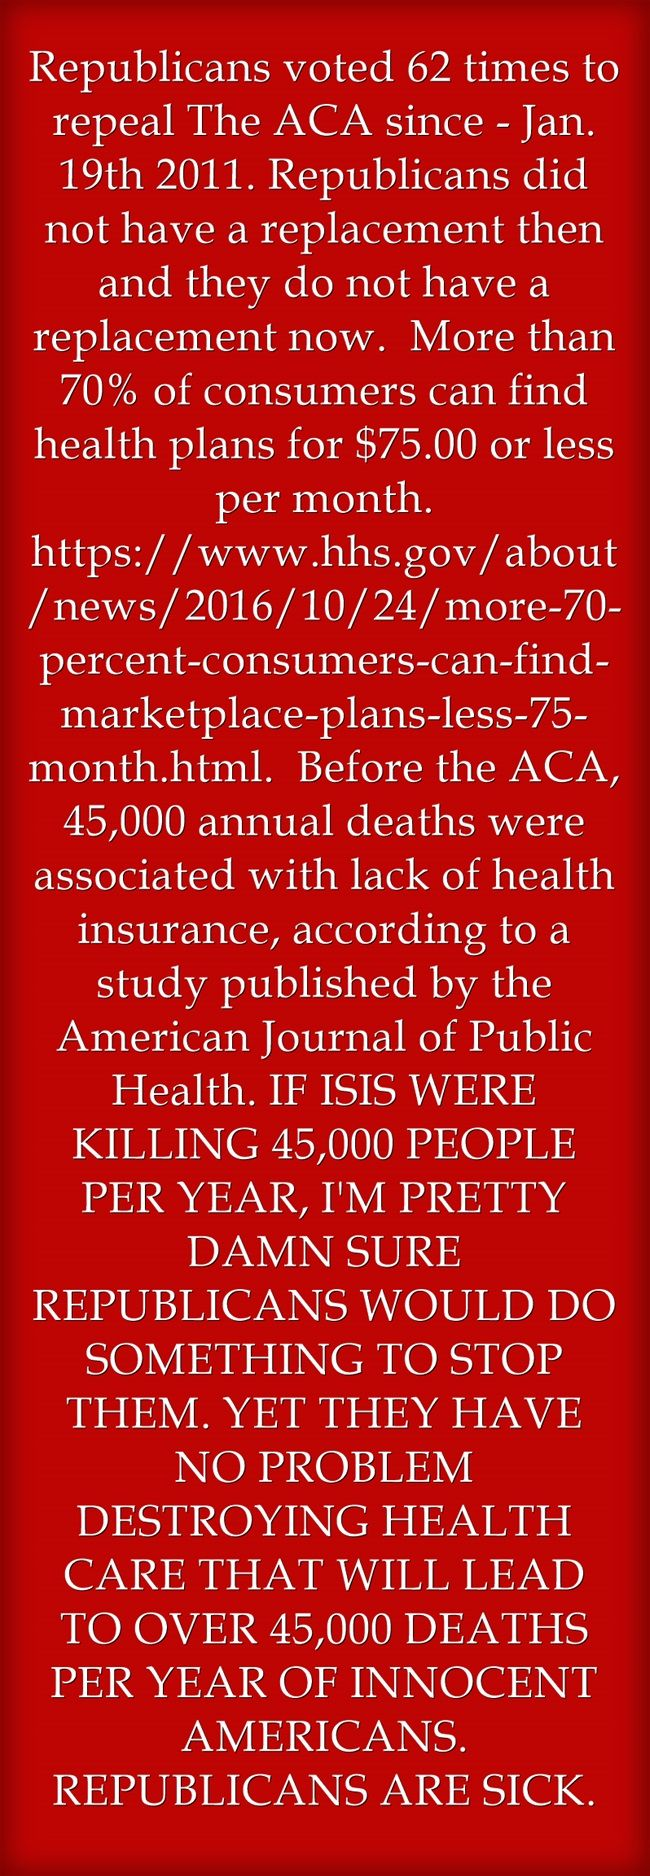 Republicans voted 62 times to repeal The ACA since - Jan. 19th 2011. Republicans did not have a replacement then and they do not have a replacement now. More than 70% of consumers can find health plans for $75.00 or less per month. https://www.hhs.gov/about/news/2016/10/24/more-70-percent-consumers-can-find-marketplace-plans-less-75-month.html. Before the ACA, 45,000 annual deaths were associated with lack of health insurance, according to a study published by the American...